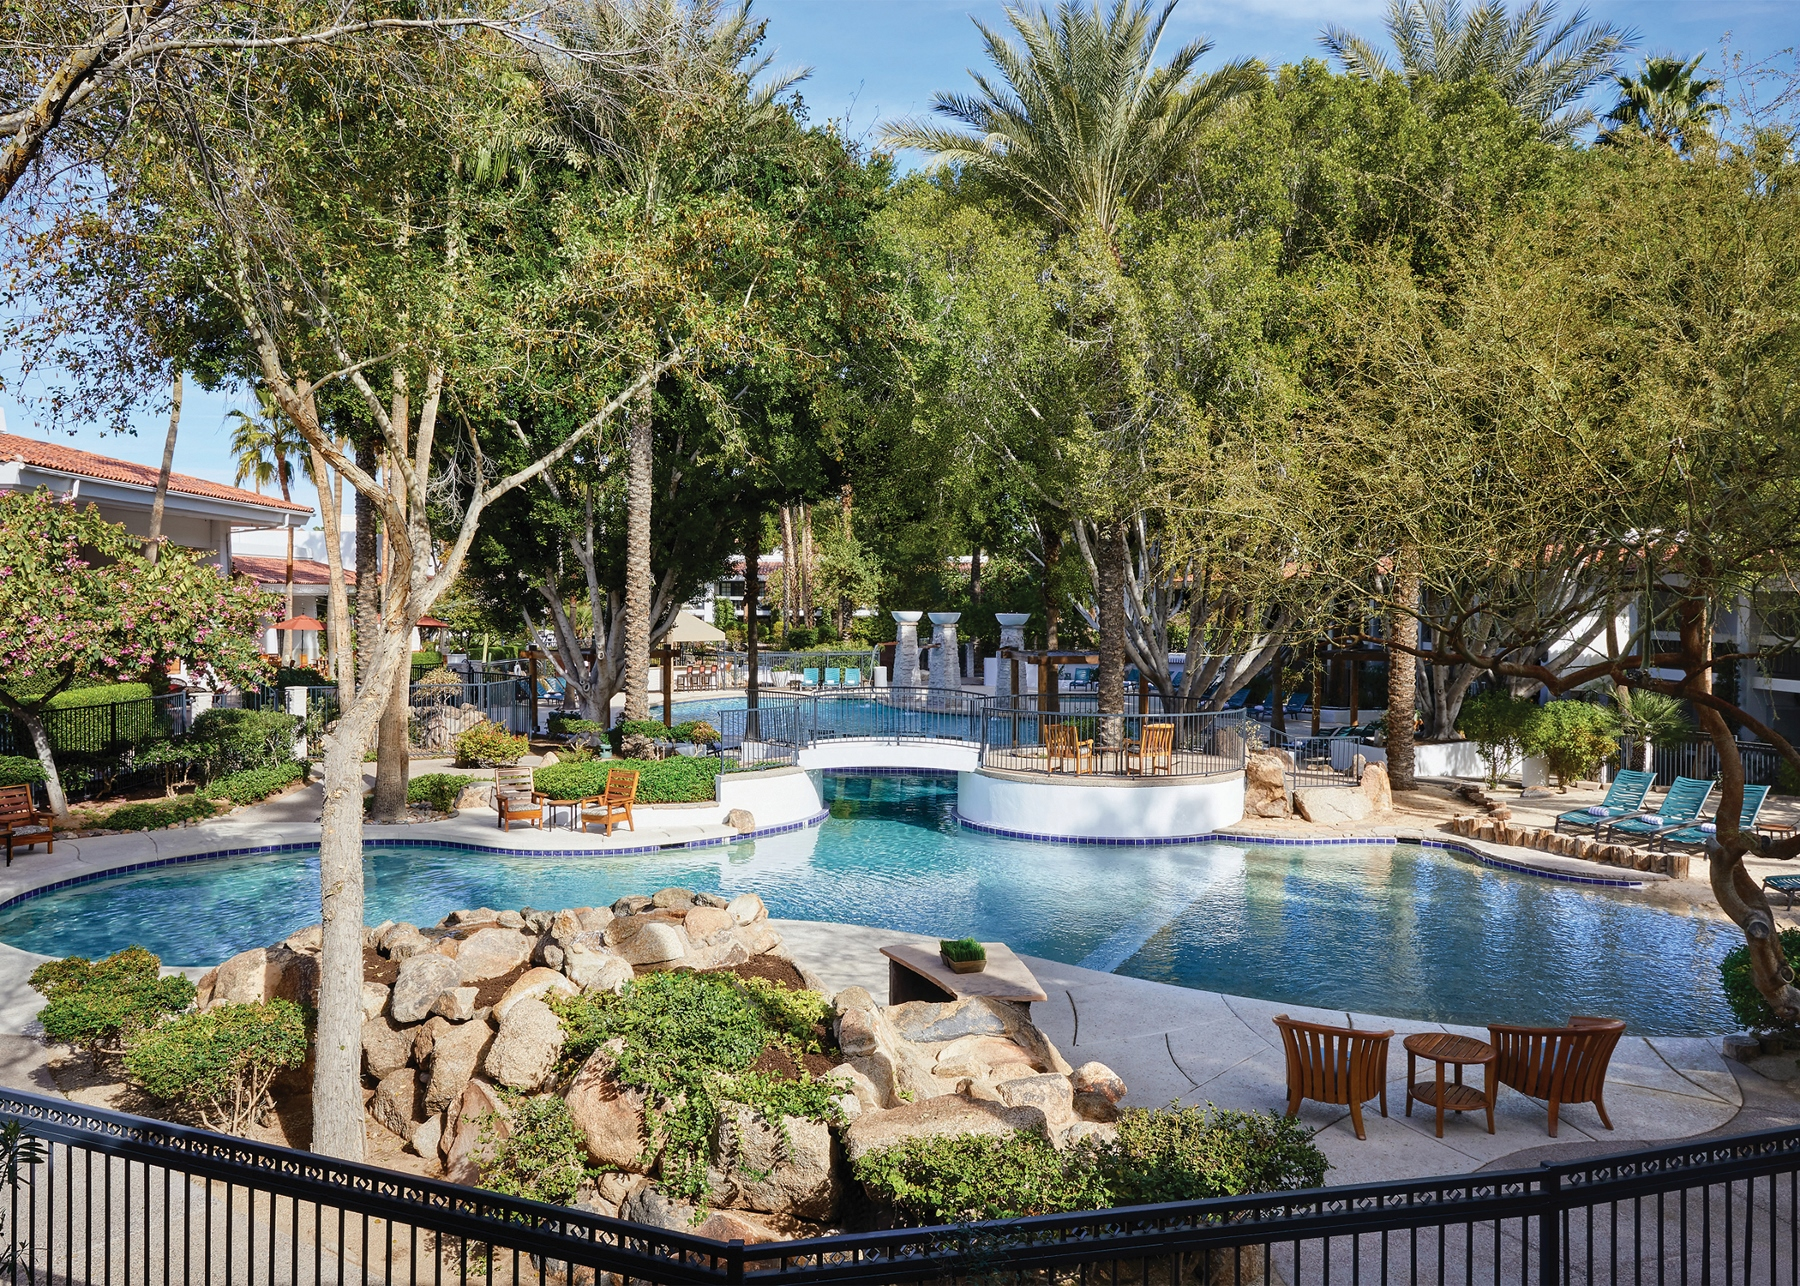 Ociated Luxury Hotels International Alhi Adds Five New Member To Its West U S Collection